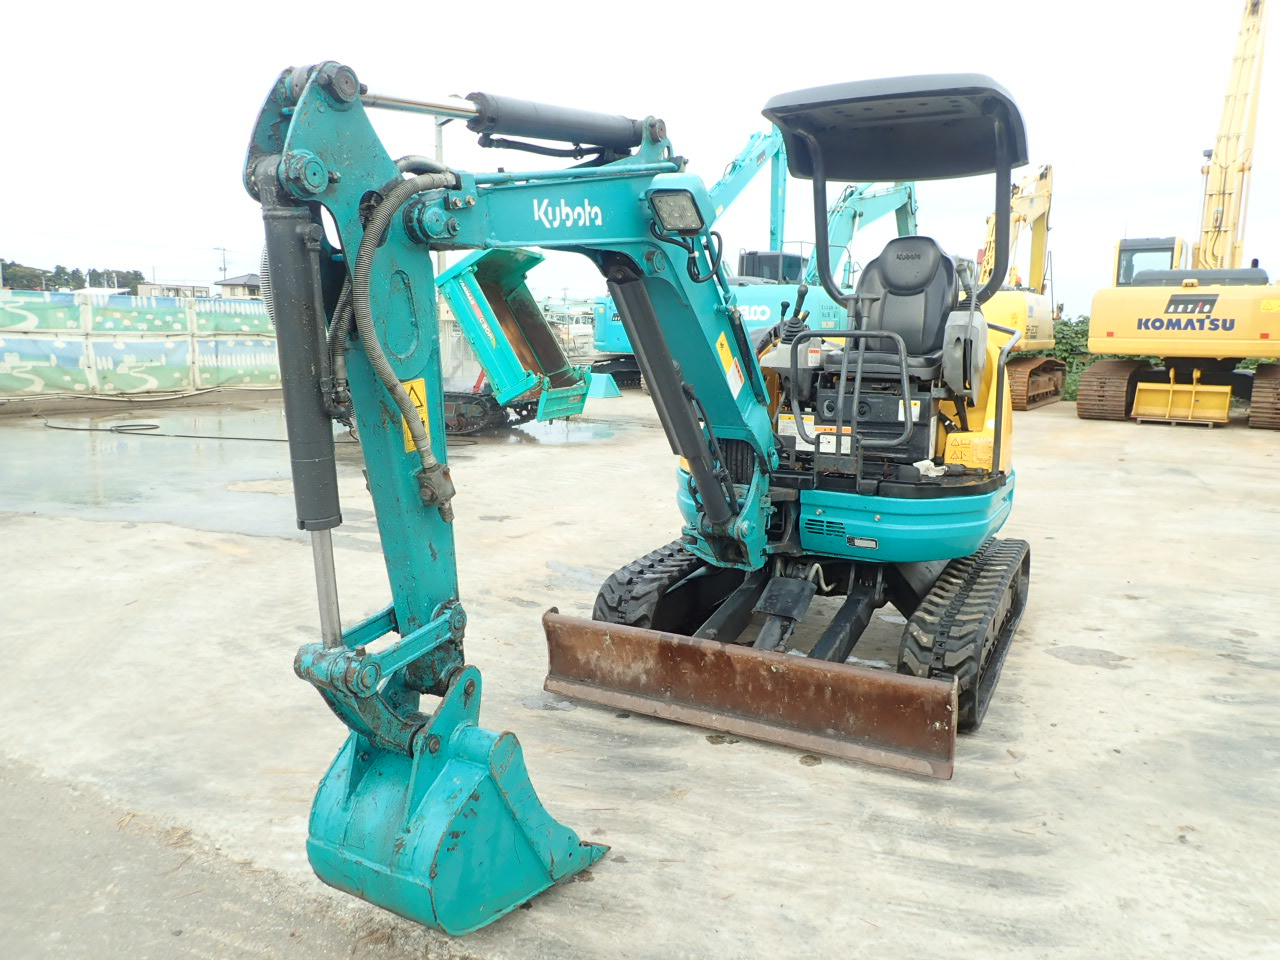 MIni excavators KUBOTA U-20-3S